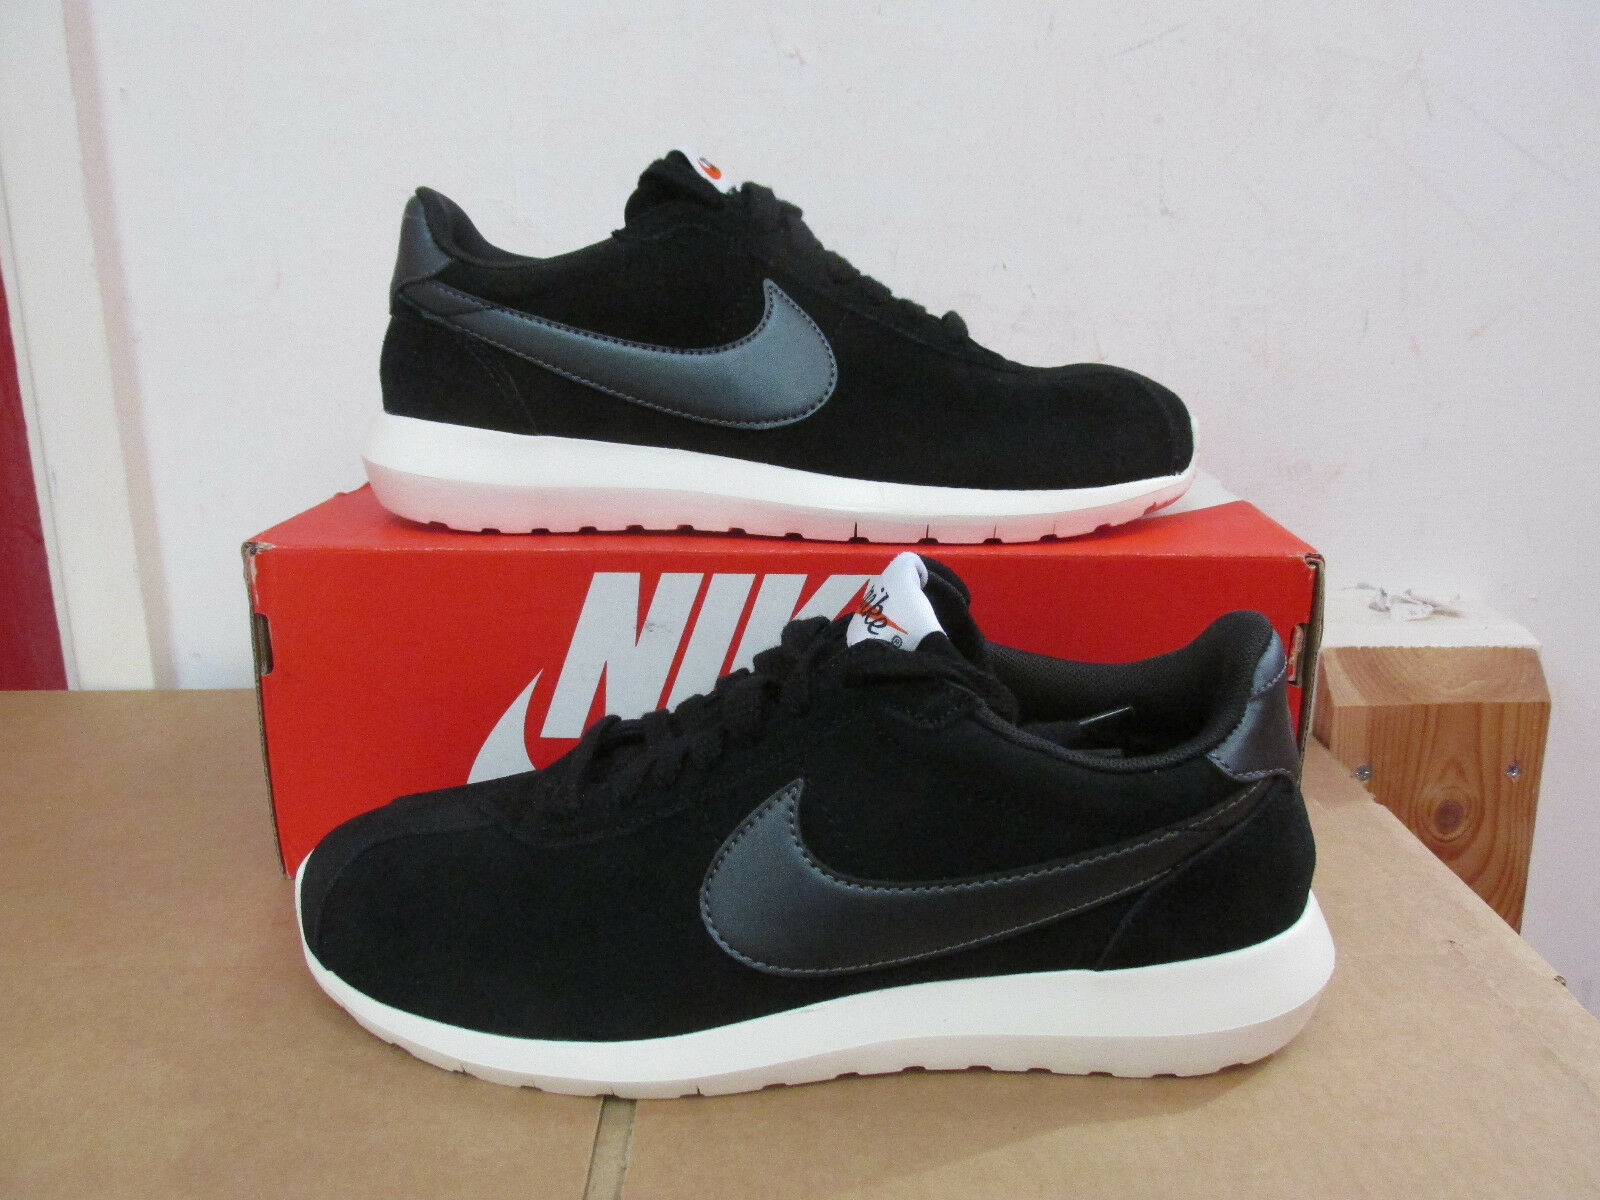 Nike Womens Roshe LD 1000 running trainers 819843 002 sneakers shoes CLEARANCE